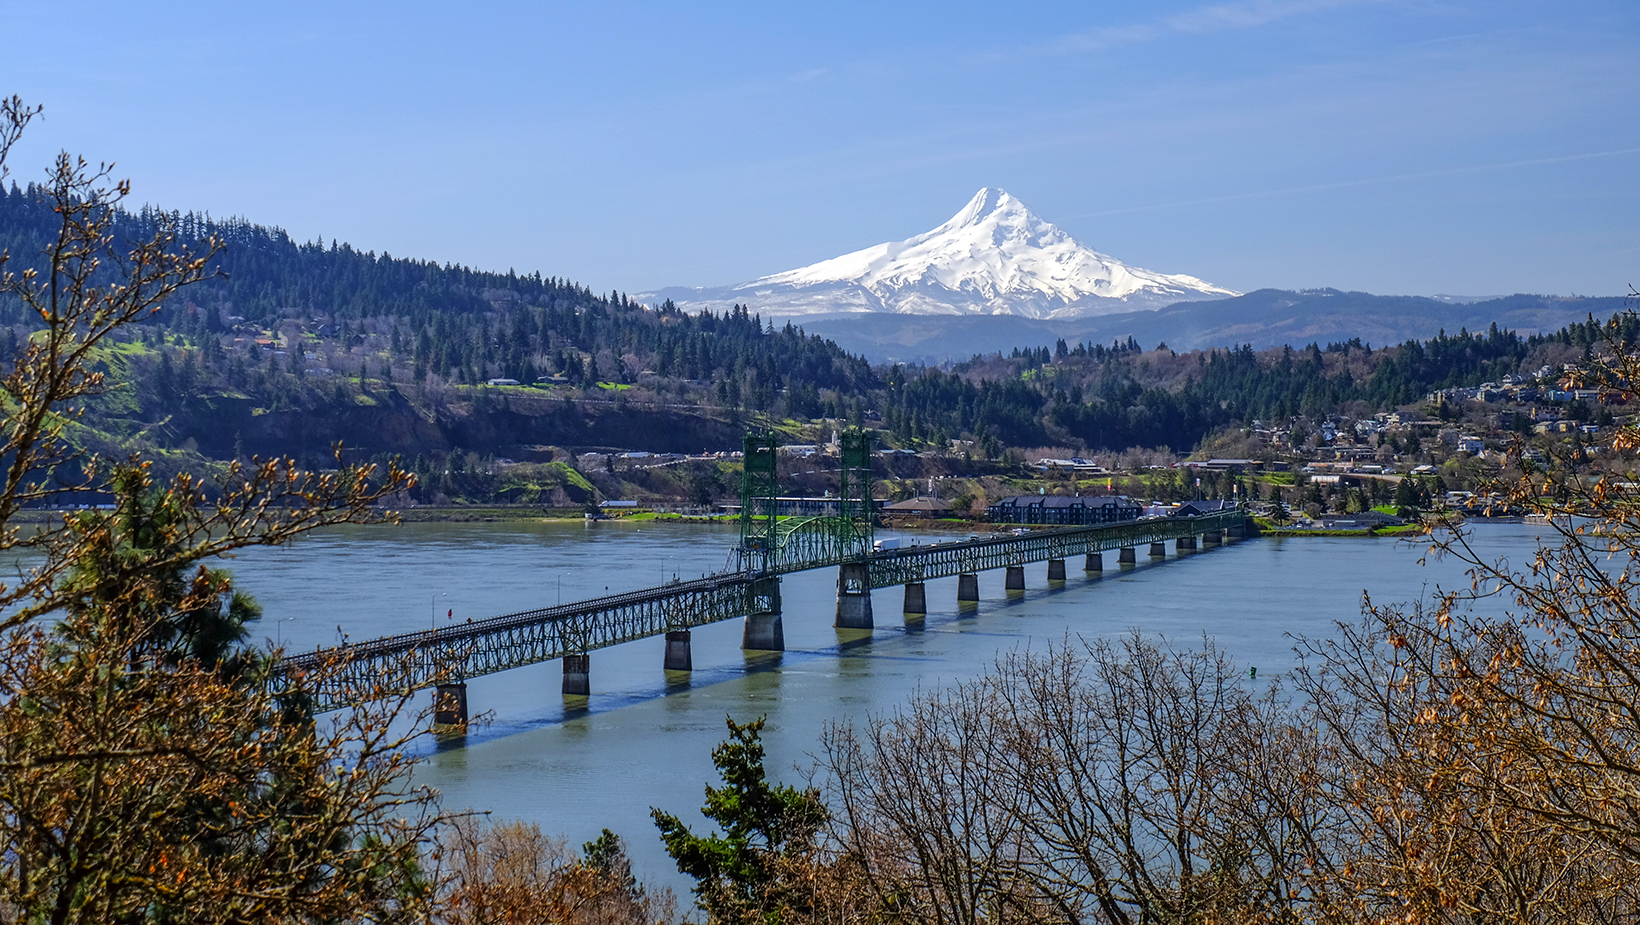 Gorgeous view of Mt. Hood as a backdrop to the Hood River Bridge, downtown Hood River and the Upper Valley